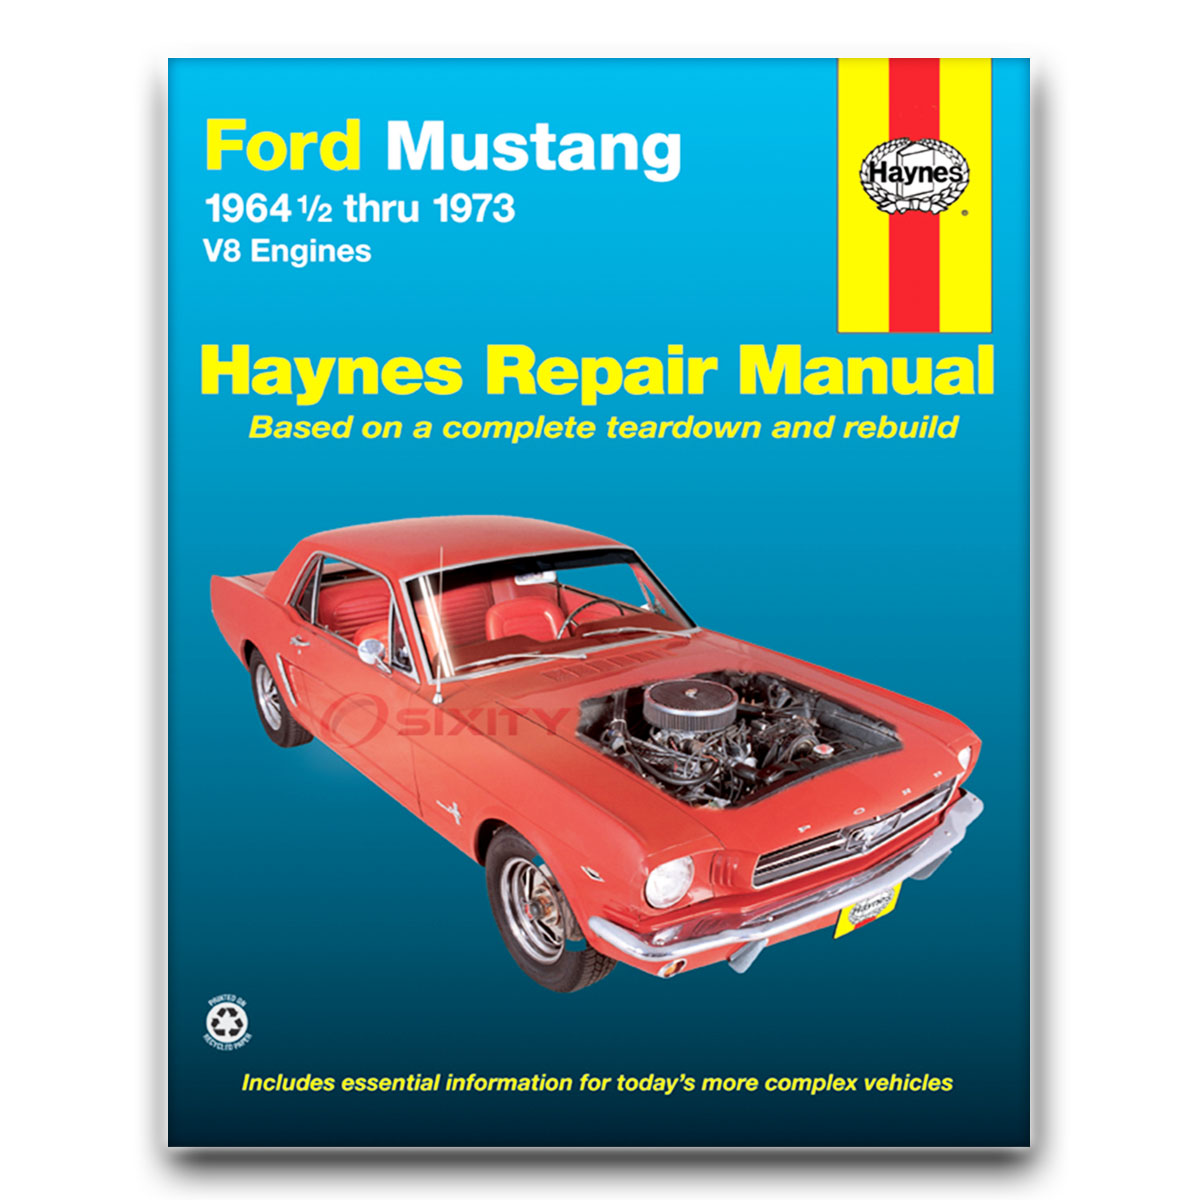 Ford Mustang V8 1964 1973 Service Repair Manual Auto Electrical Mtd Snowblower Wiring Diagram